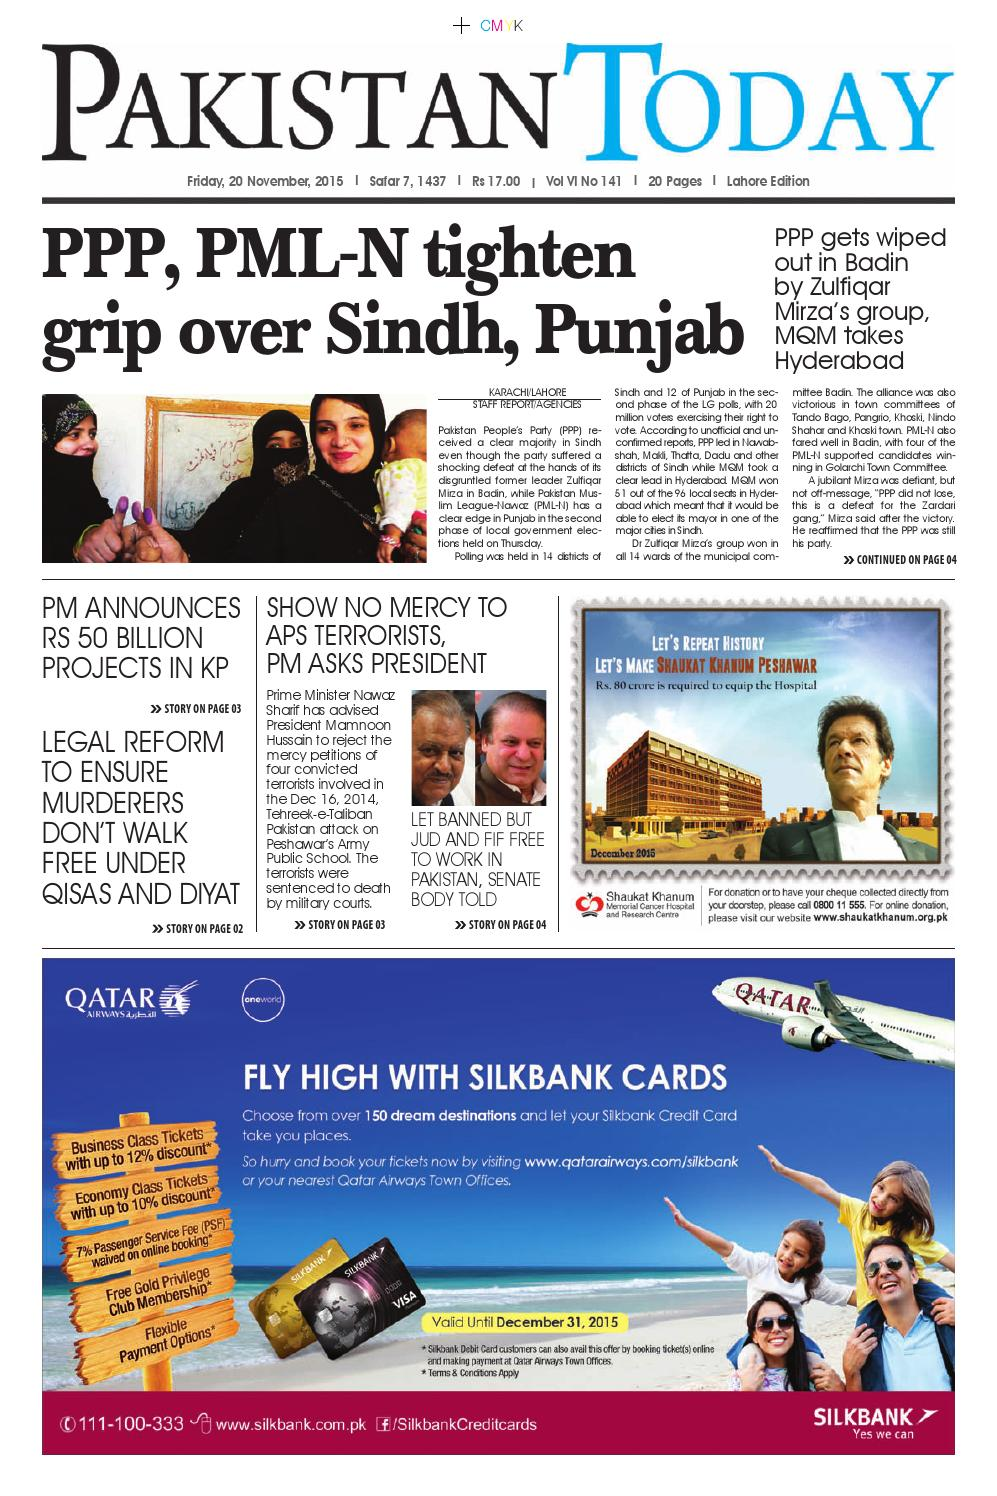 E paper pdf (20 11 2015) (lhr) by Pakistan Today - issuu